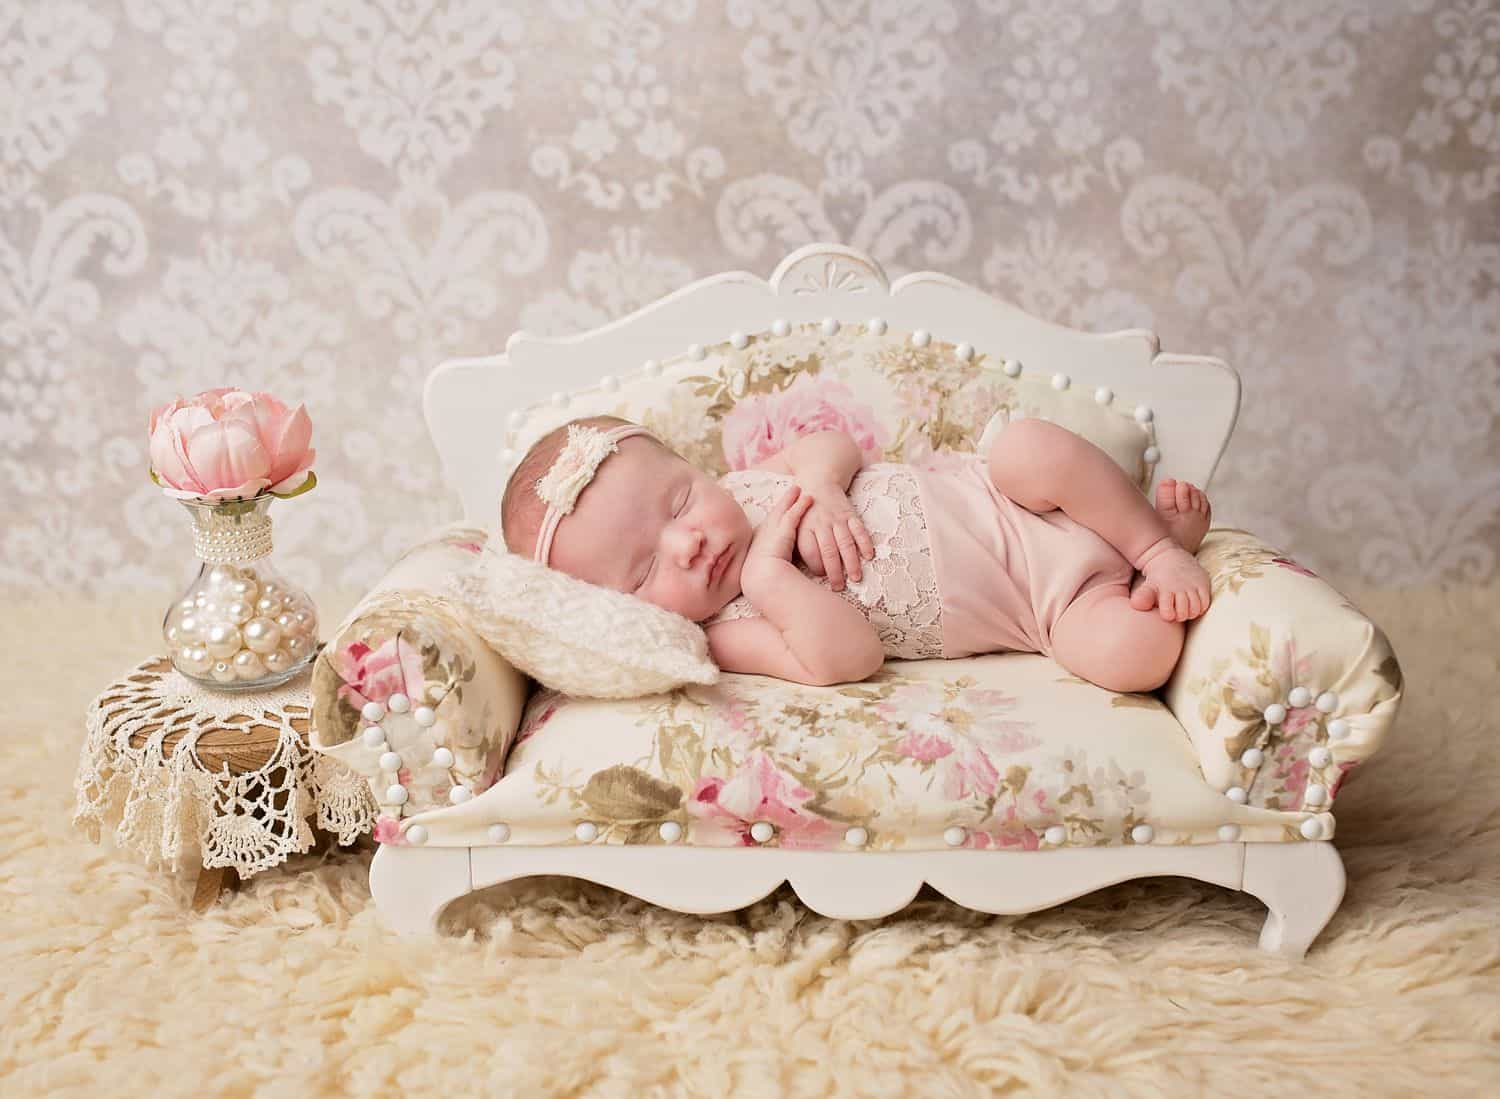 The best newborn photography props include luxurious items like this tiny wooden sofa upholstered with floral fabric and finished with pearl beads. In this photo, a baby girl lies on her side in a pink onesie. The sofa sits on a cream shag rug, and damask wallpaper hands in the background.